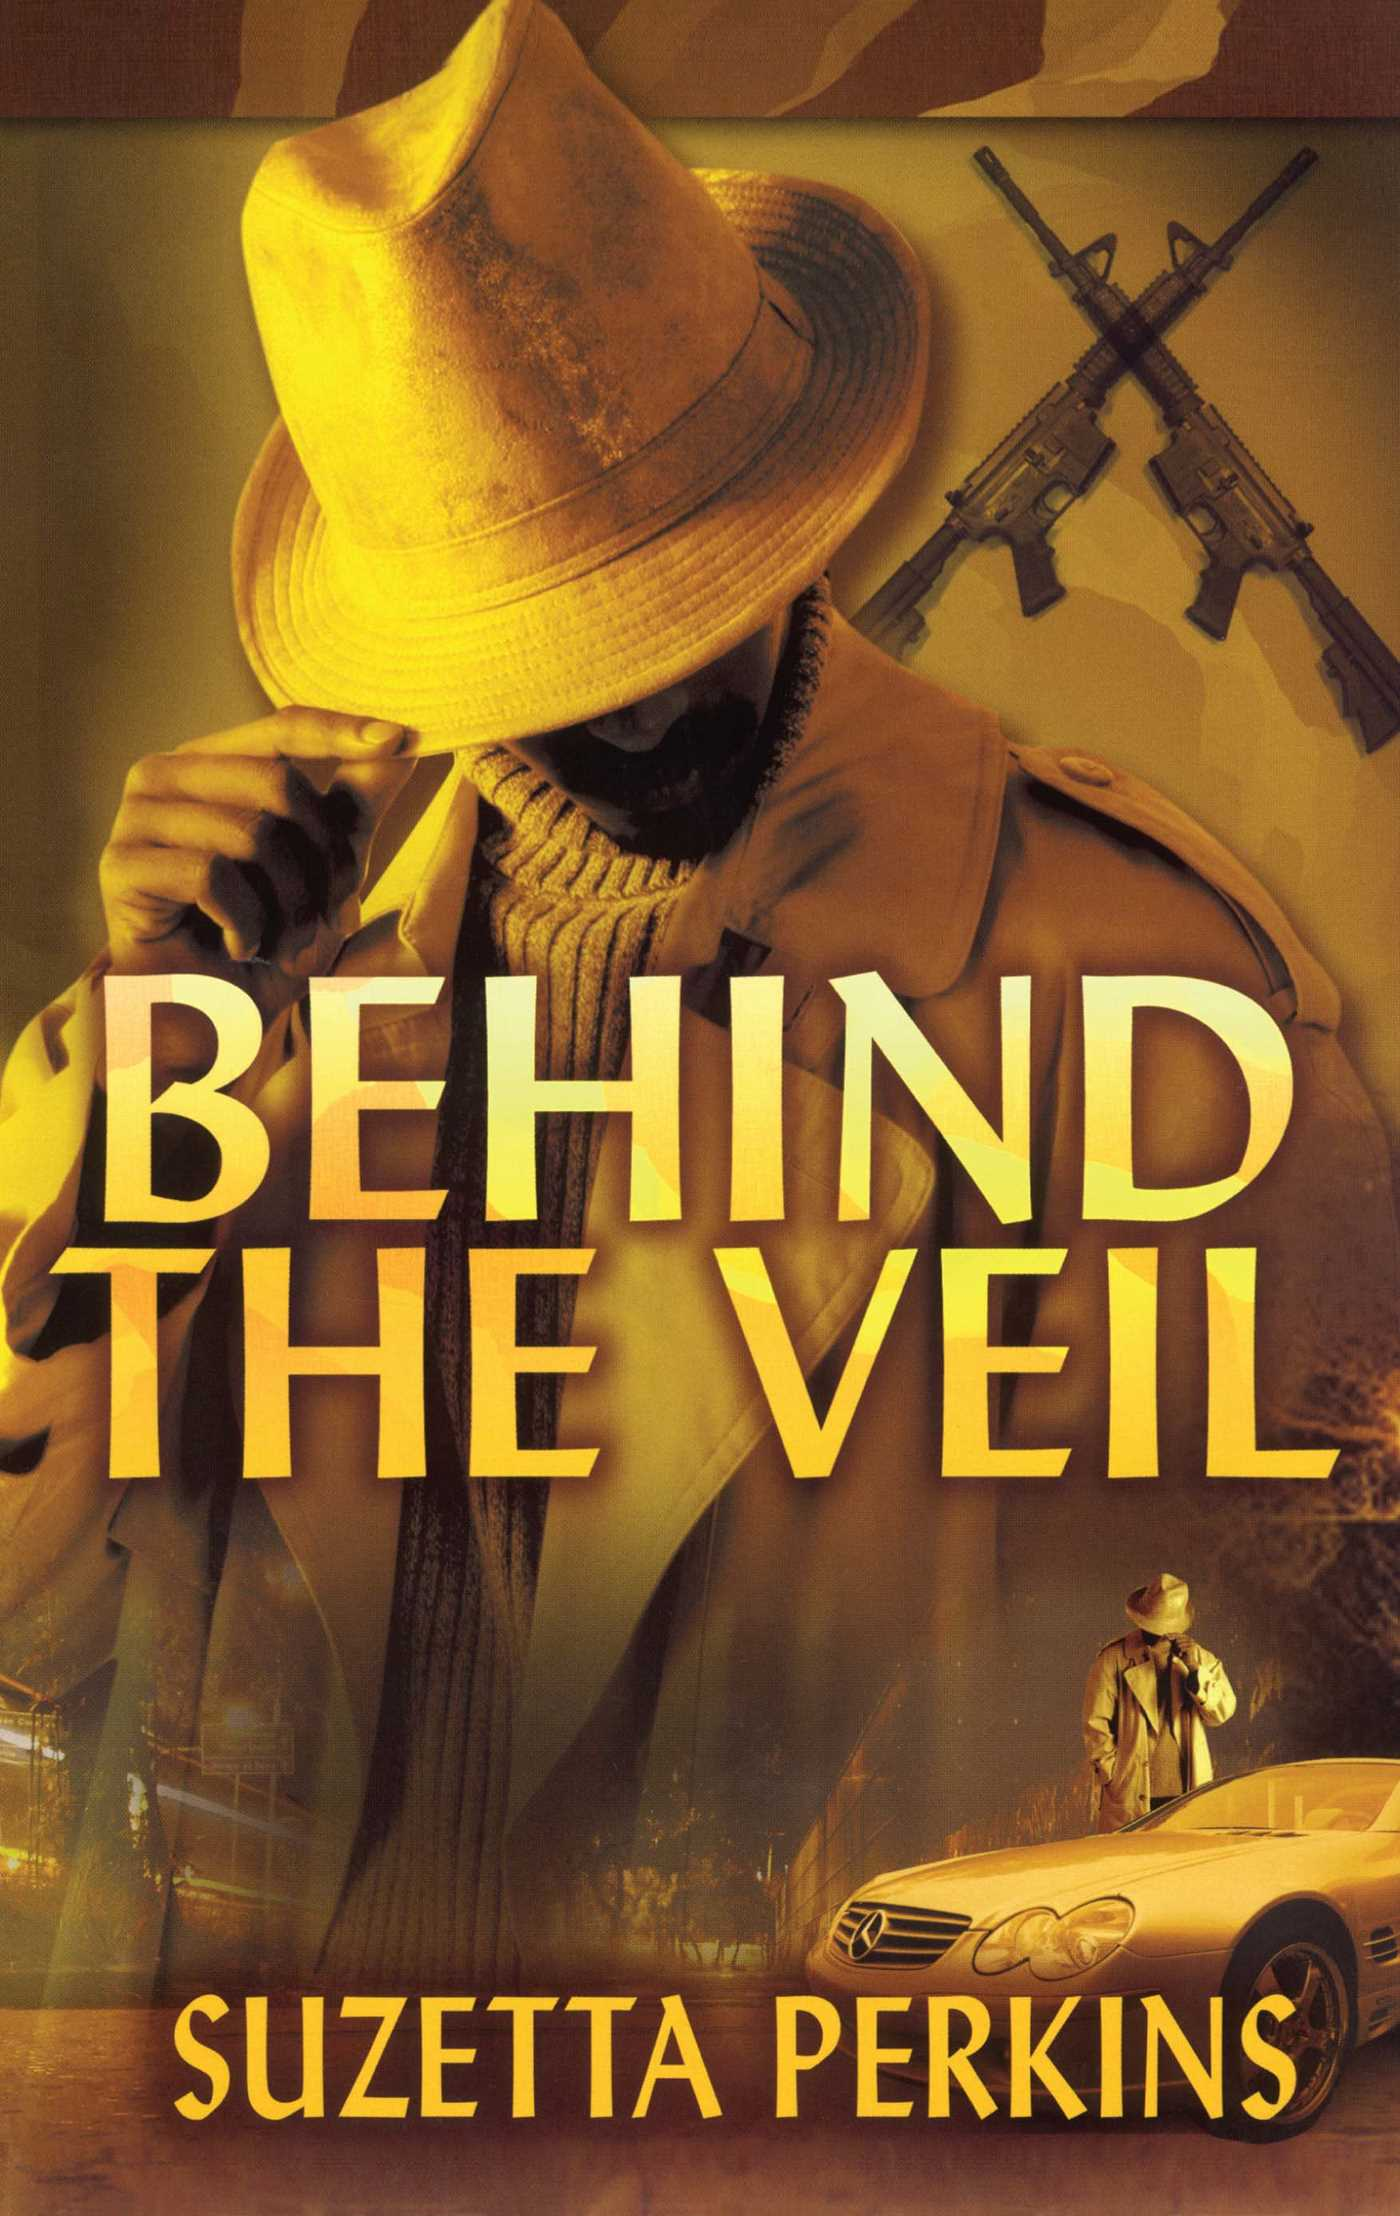 Behind-the-veil-9781593090630_hr